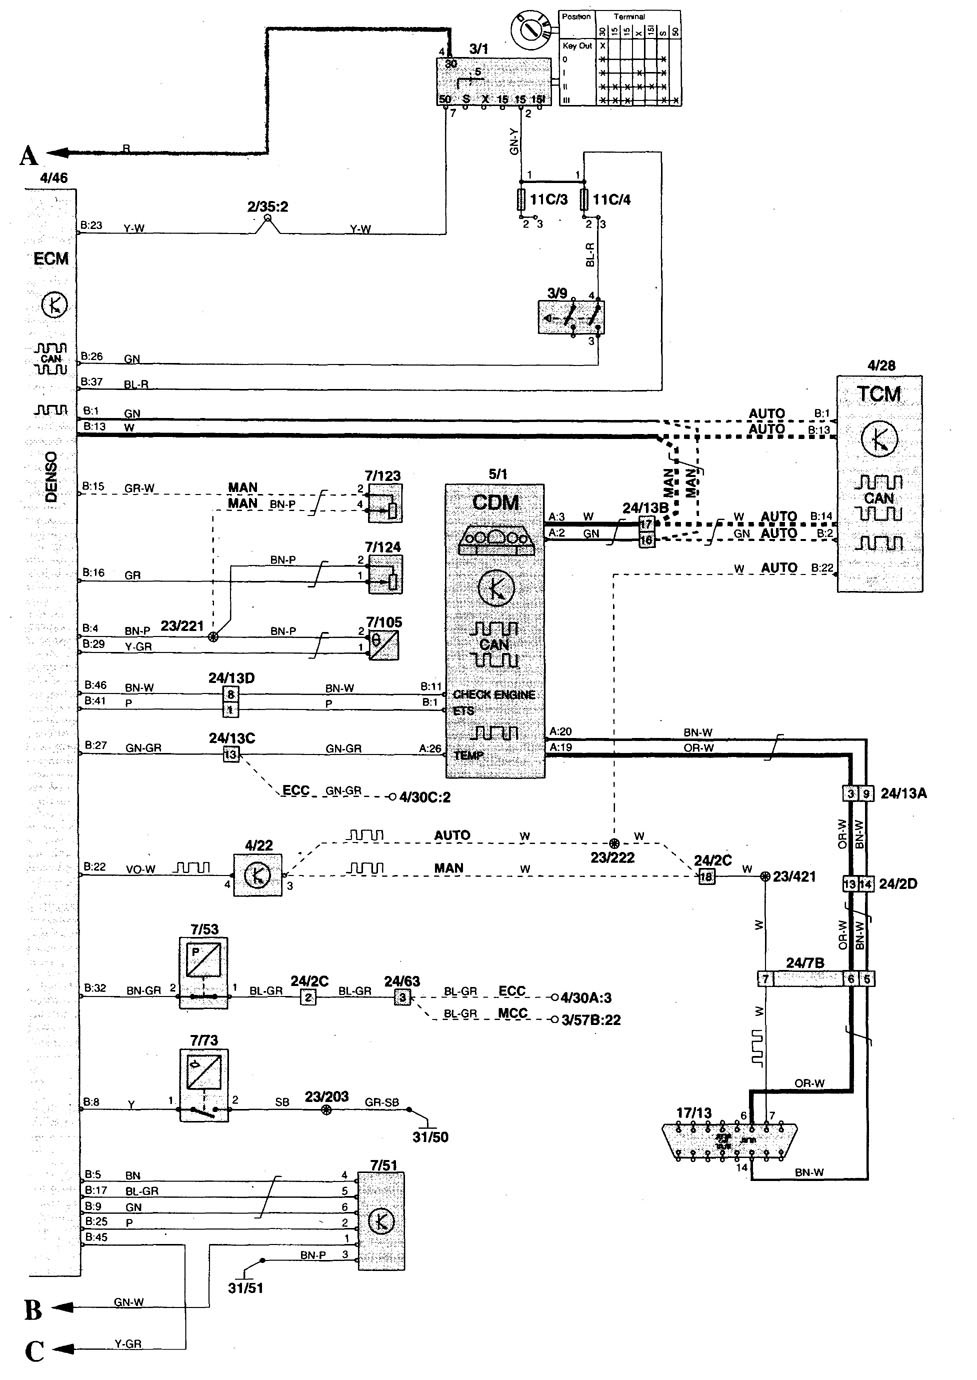 1999 Volvo Wiring Diagram Great Design Of For 2004 S40 C70 Diagrams Fuel Pump S70 Radio